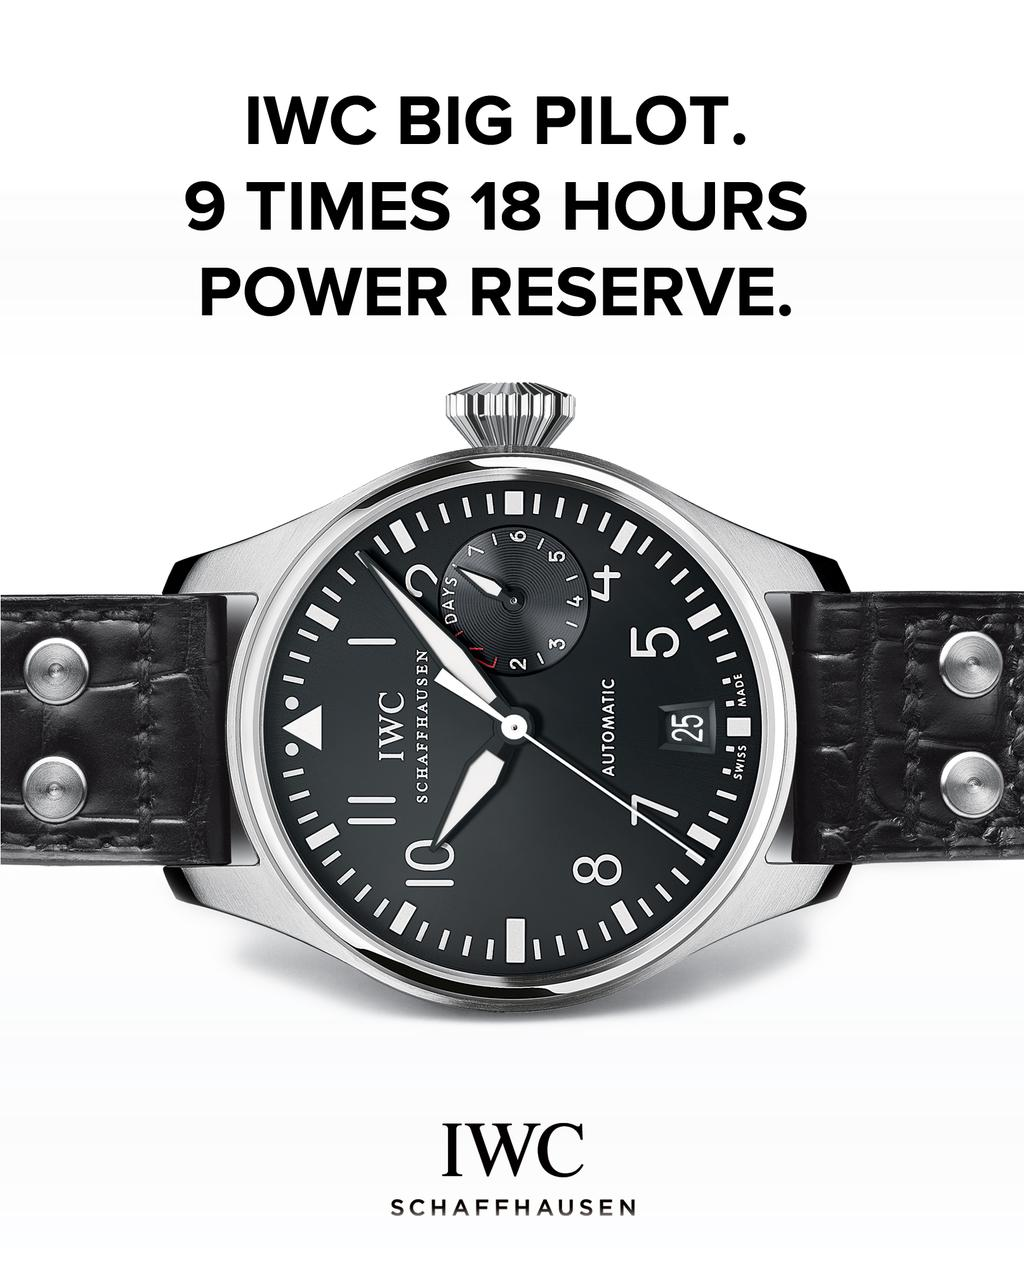 IWC Apple Watch Commercial